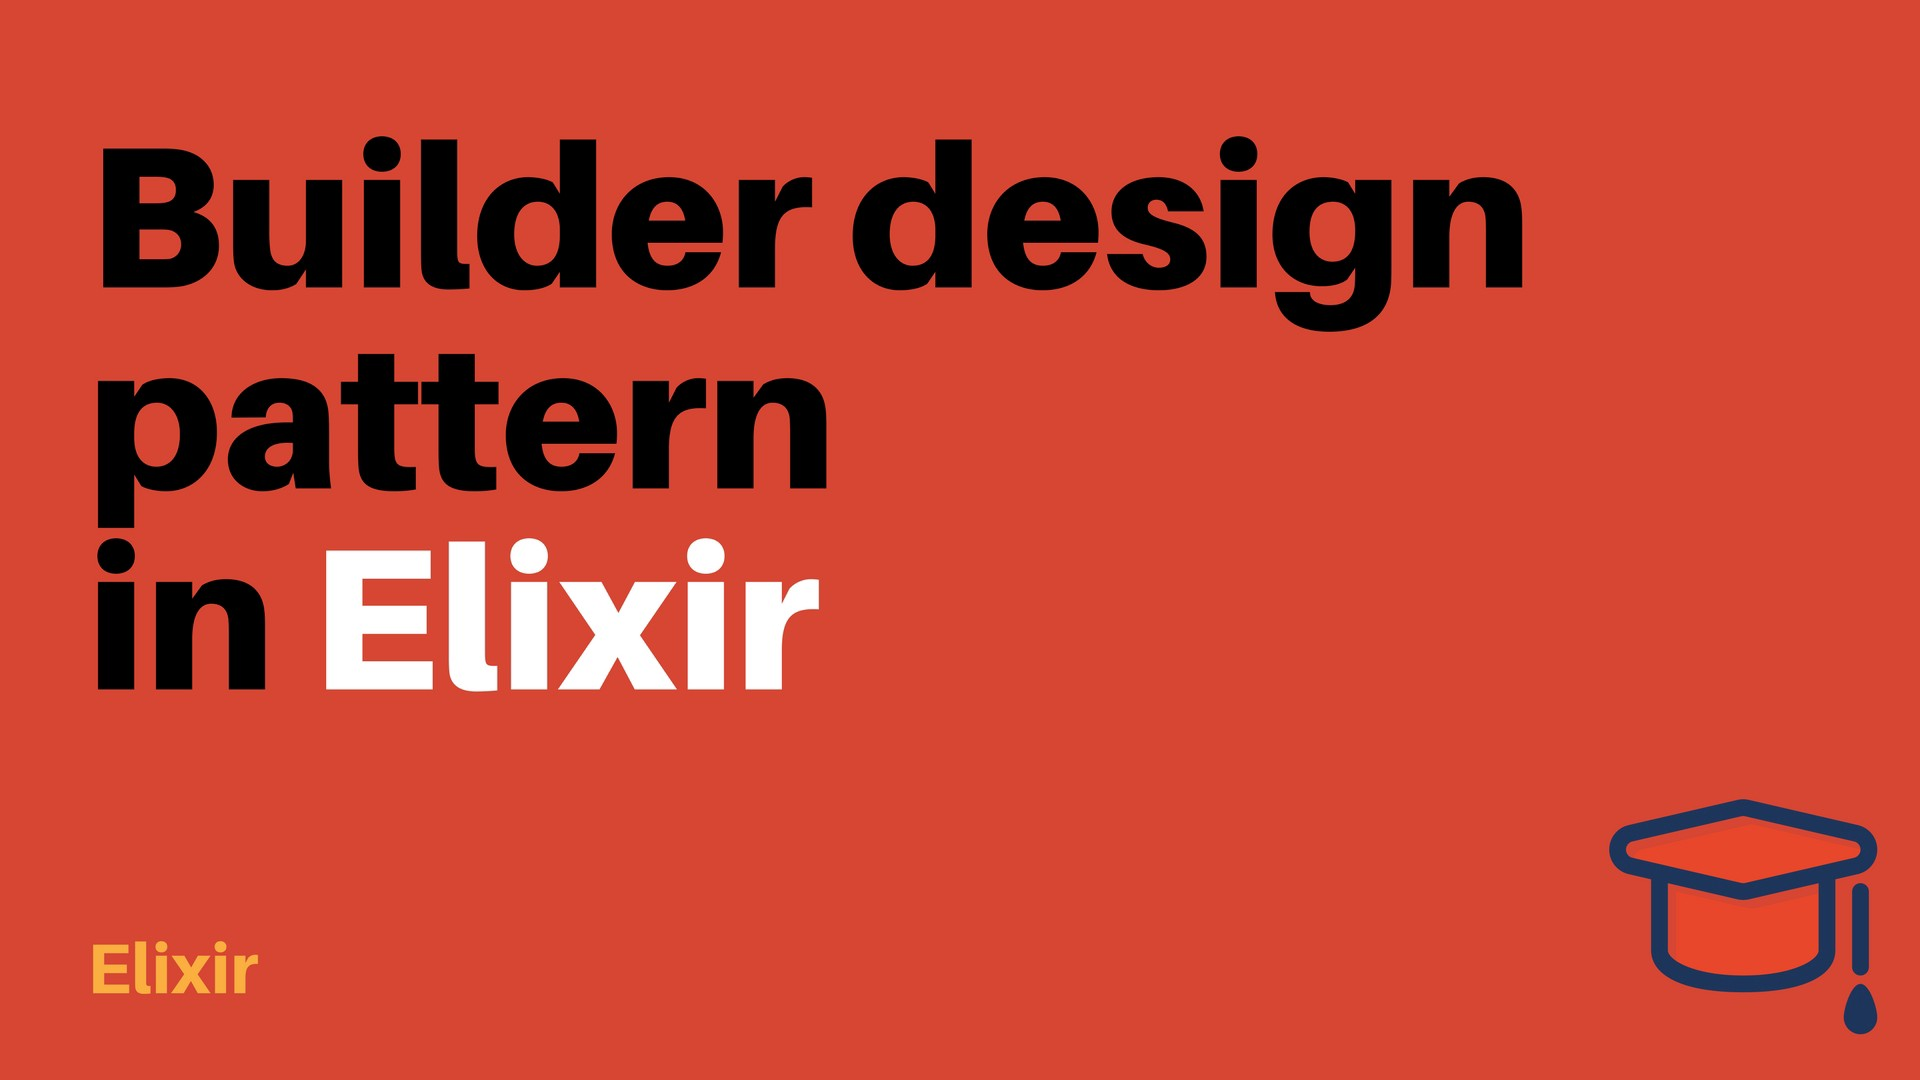 Builder Design Pattern In Elixir Builder Design Pattern In Elixir By Krzysztof Kempinski Kkempin S Dev Blog Medium